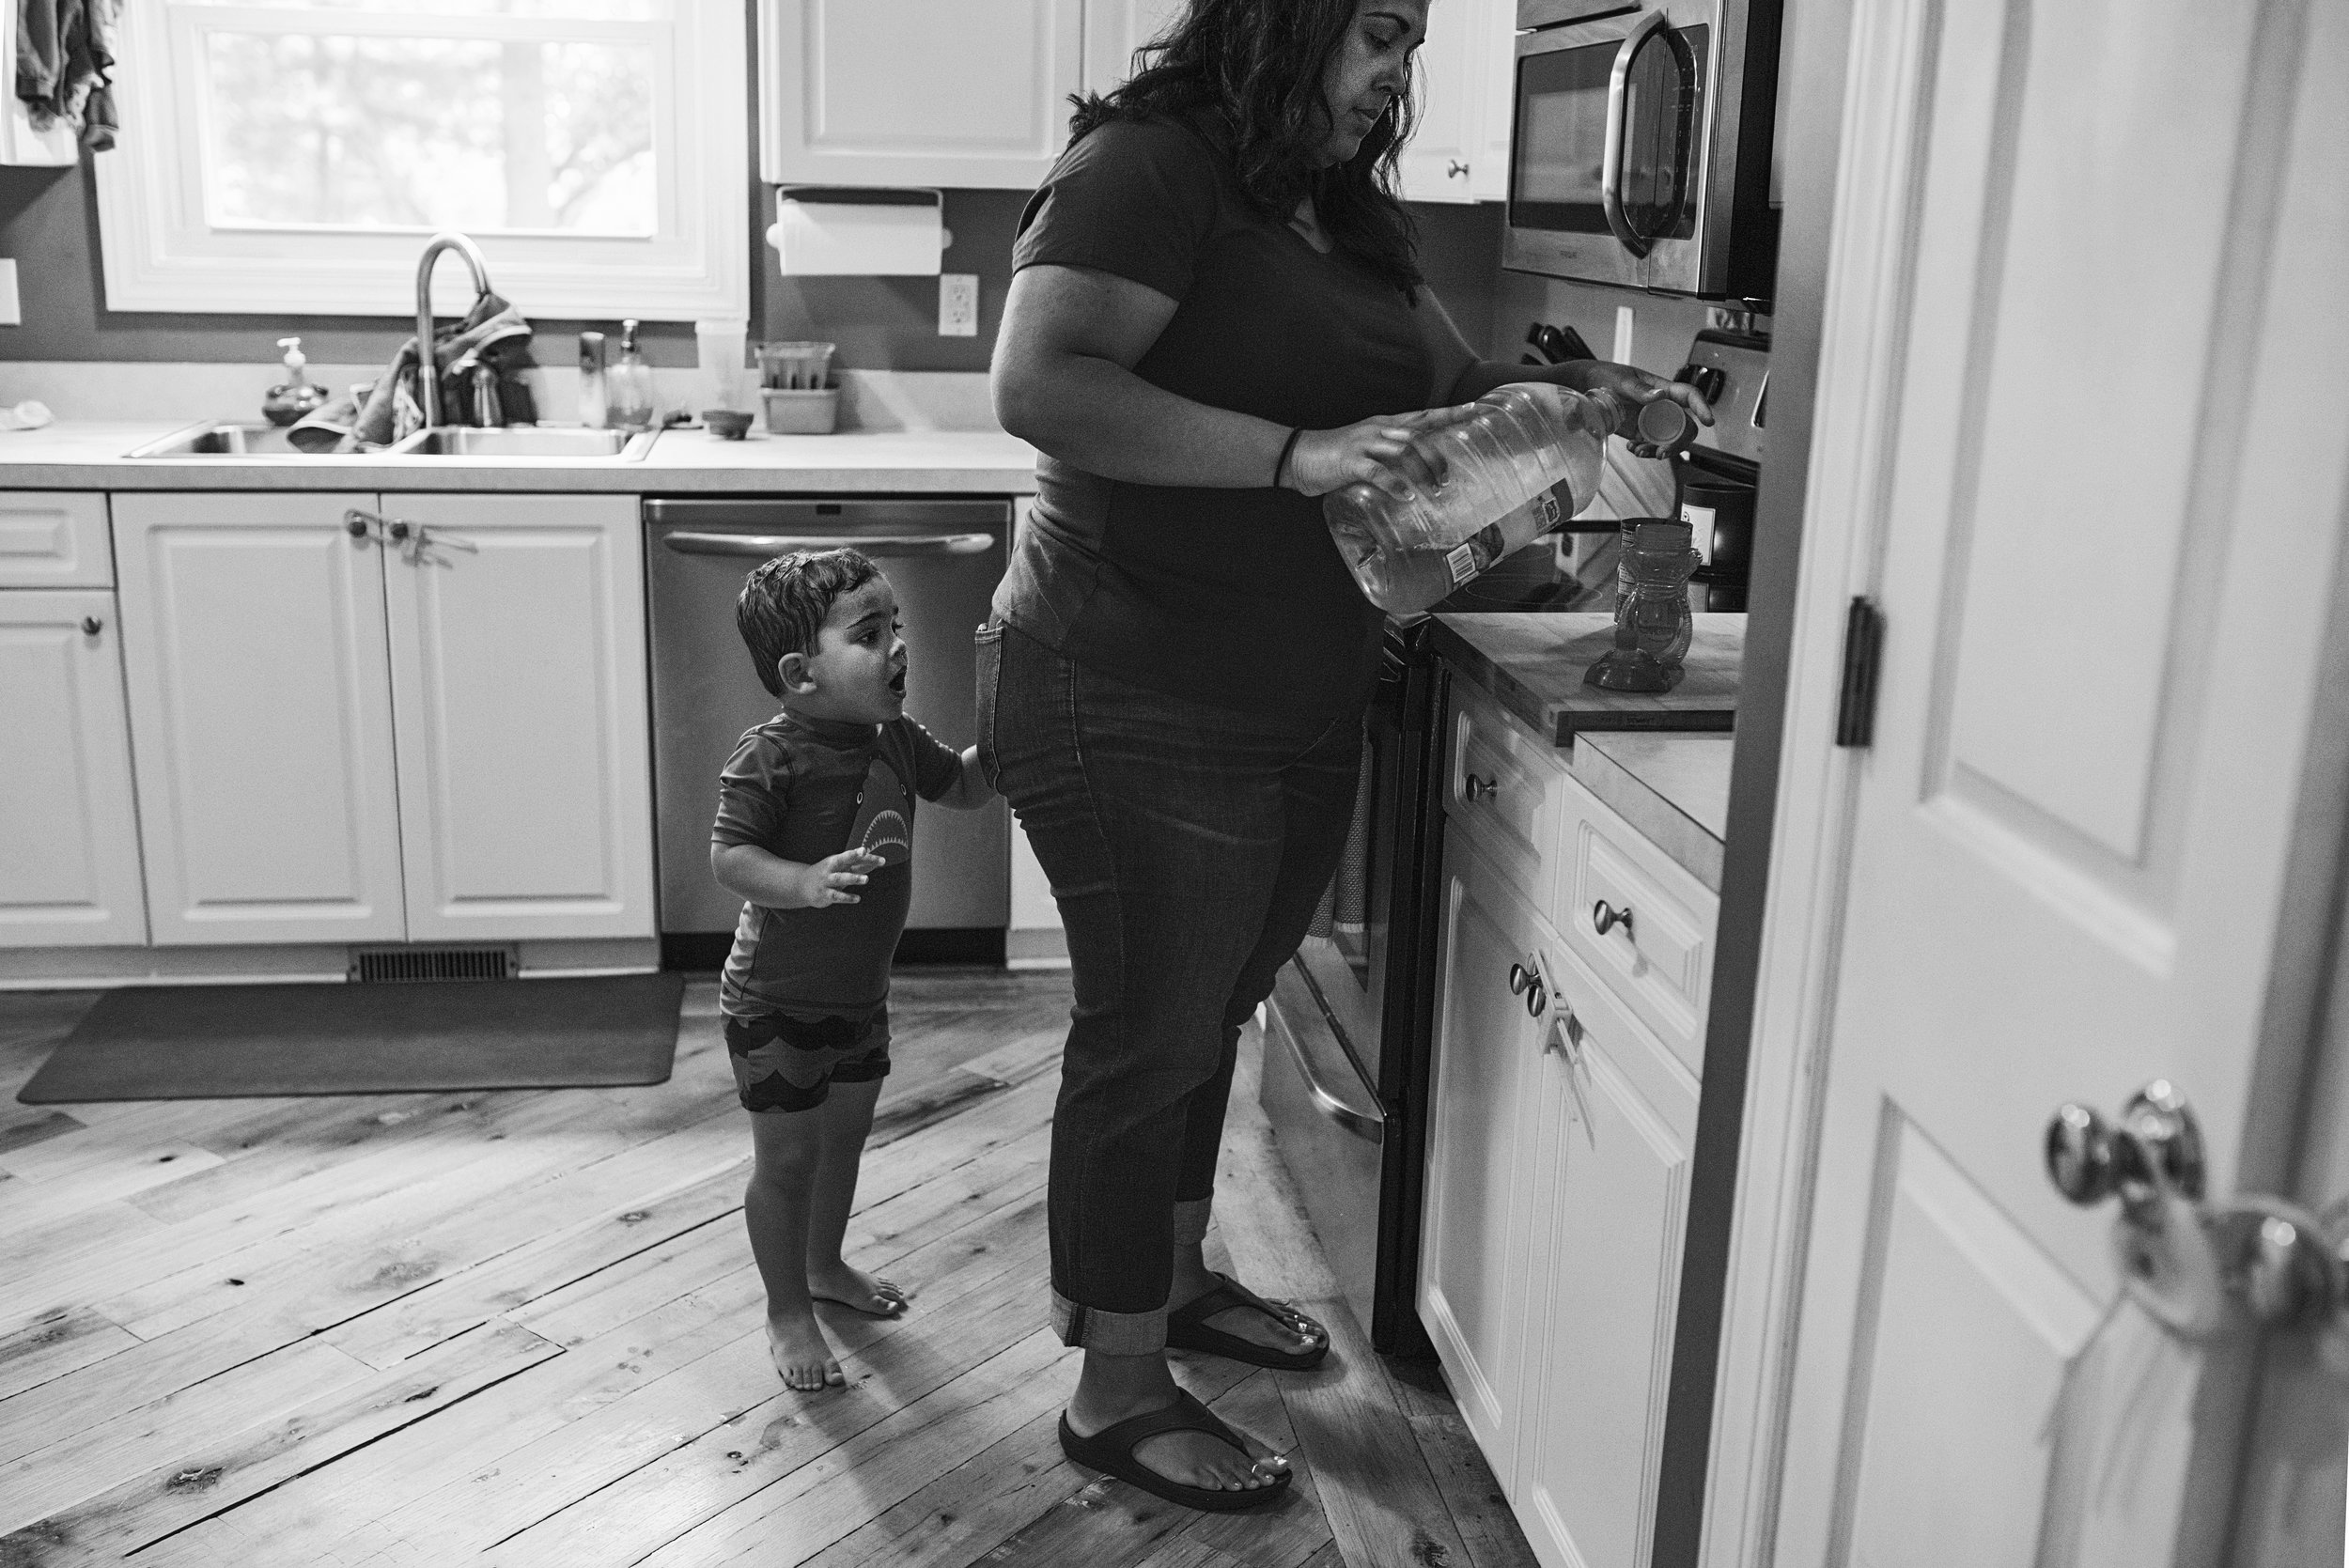 richmond family photographer offers documentary photography to create images of parents and their kids.